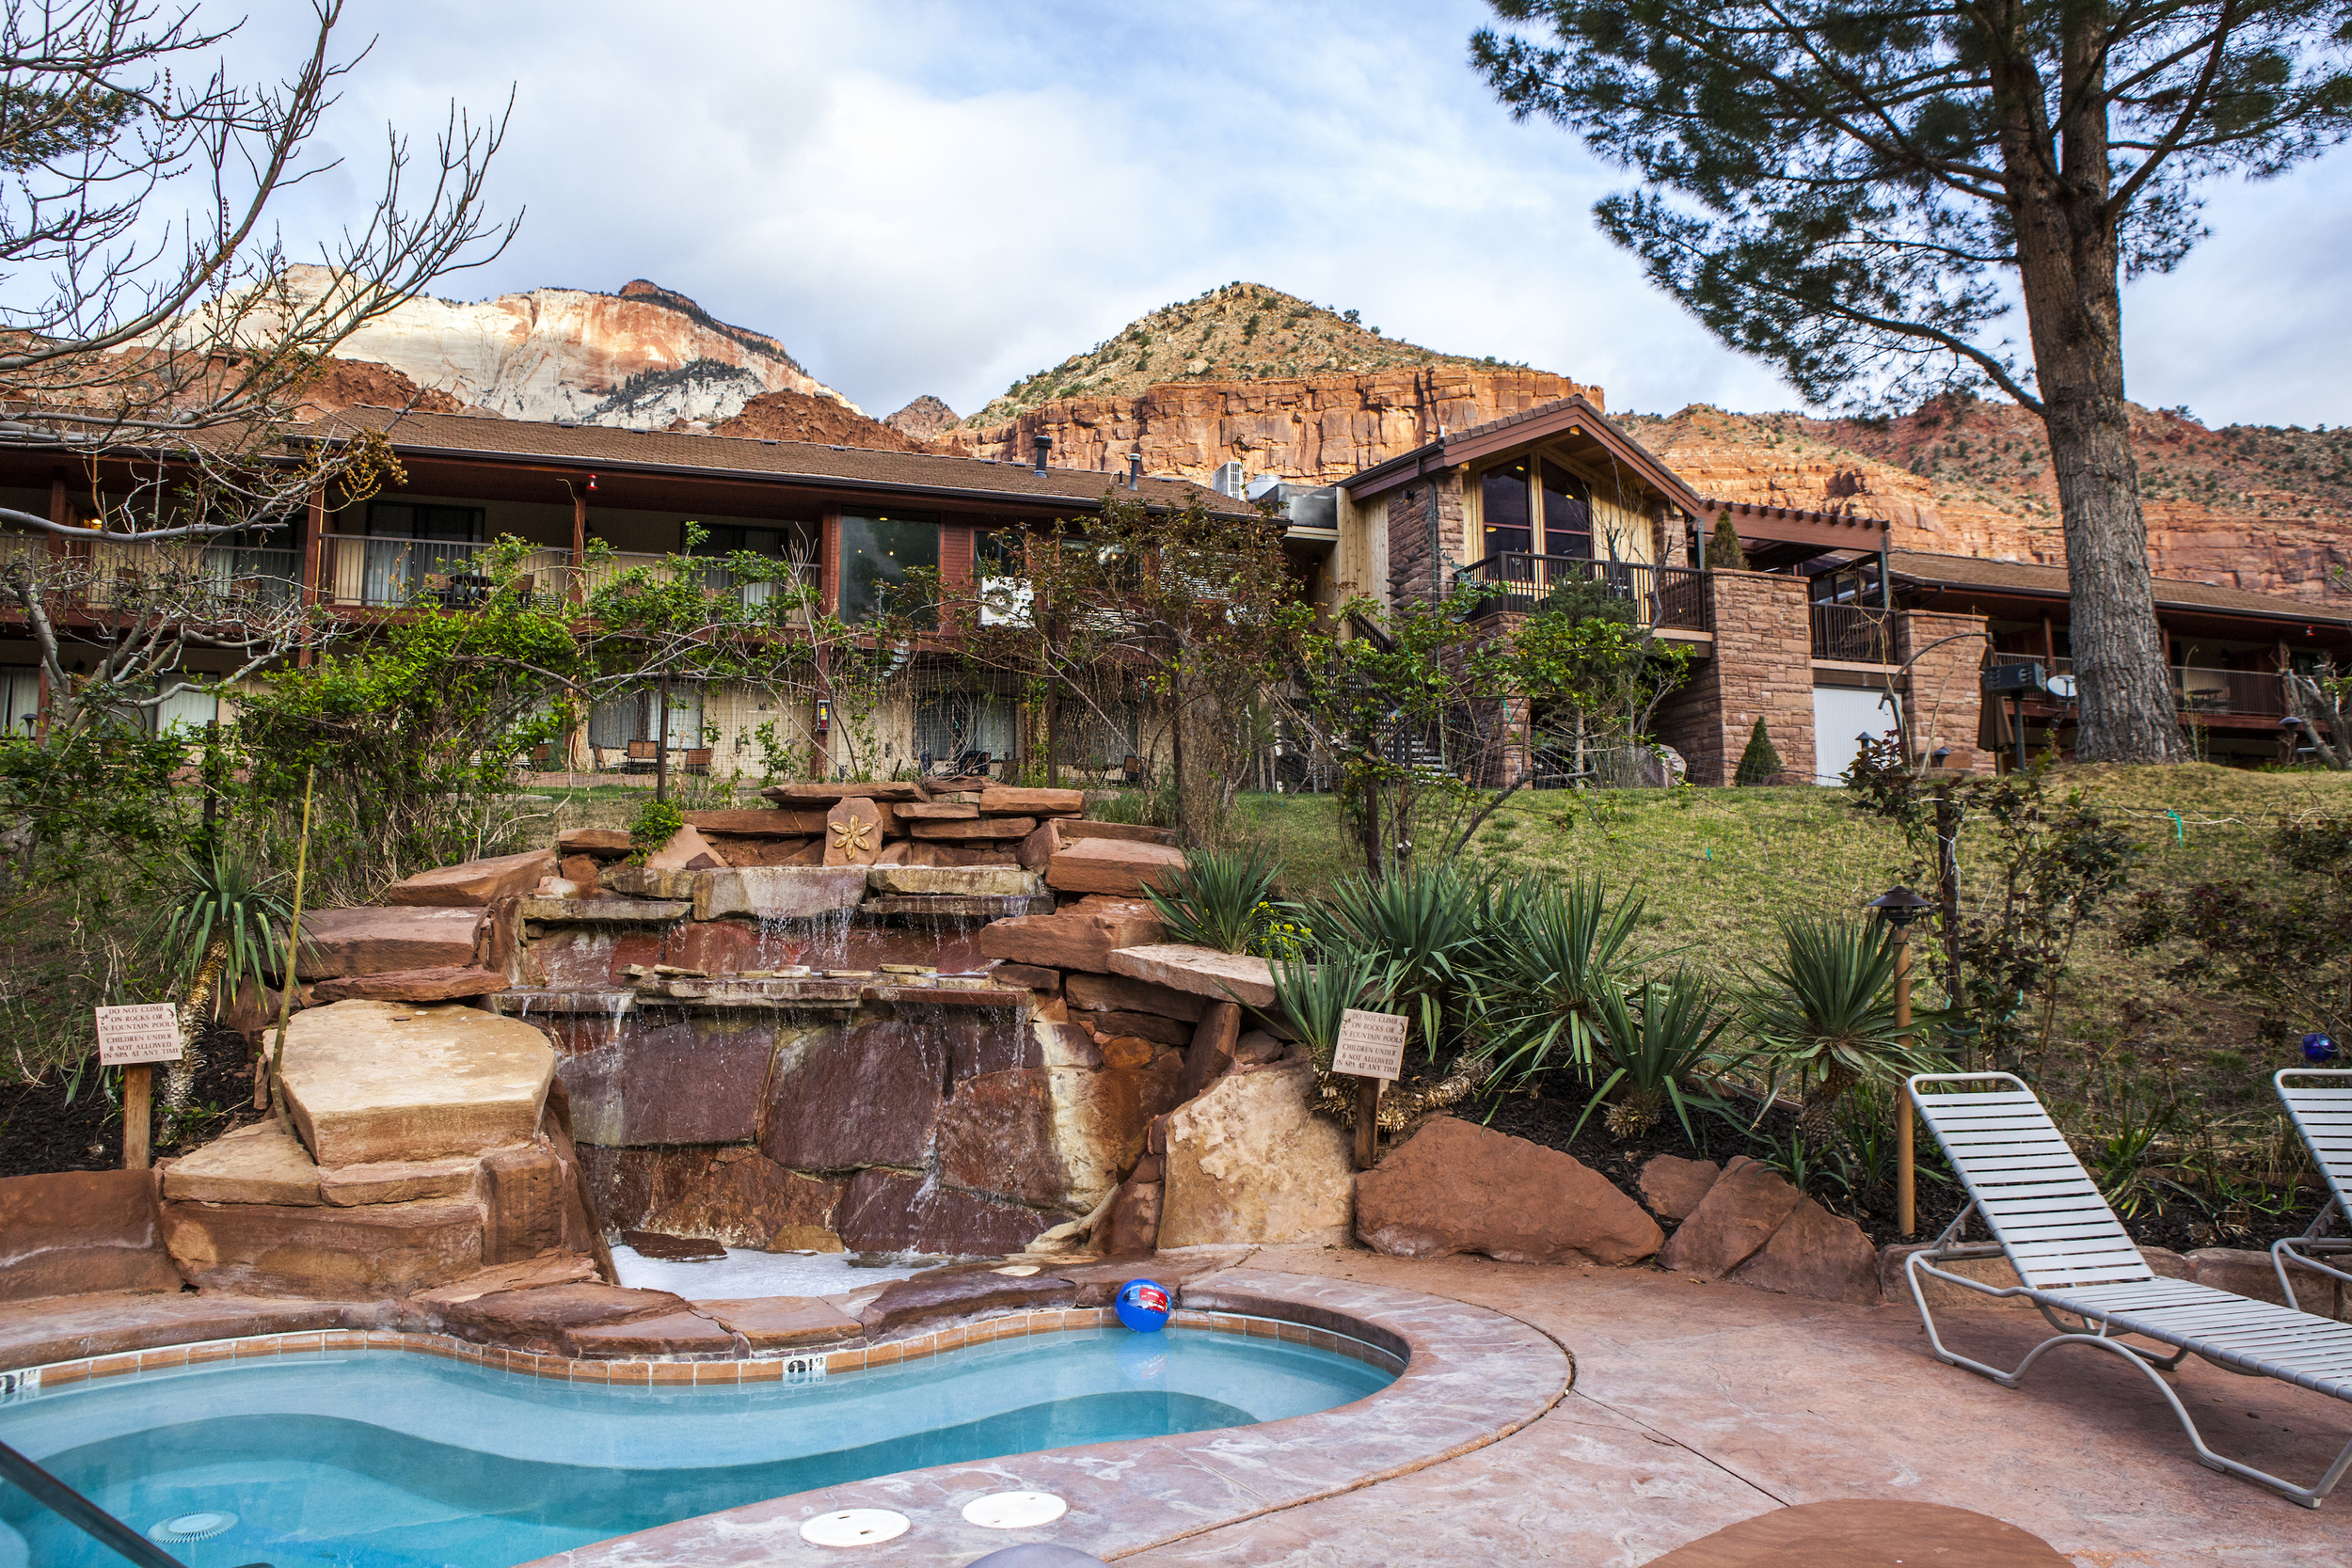 Multiple jacuzzi's and heated pools were perfect for warm days and cold nights.